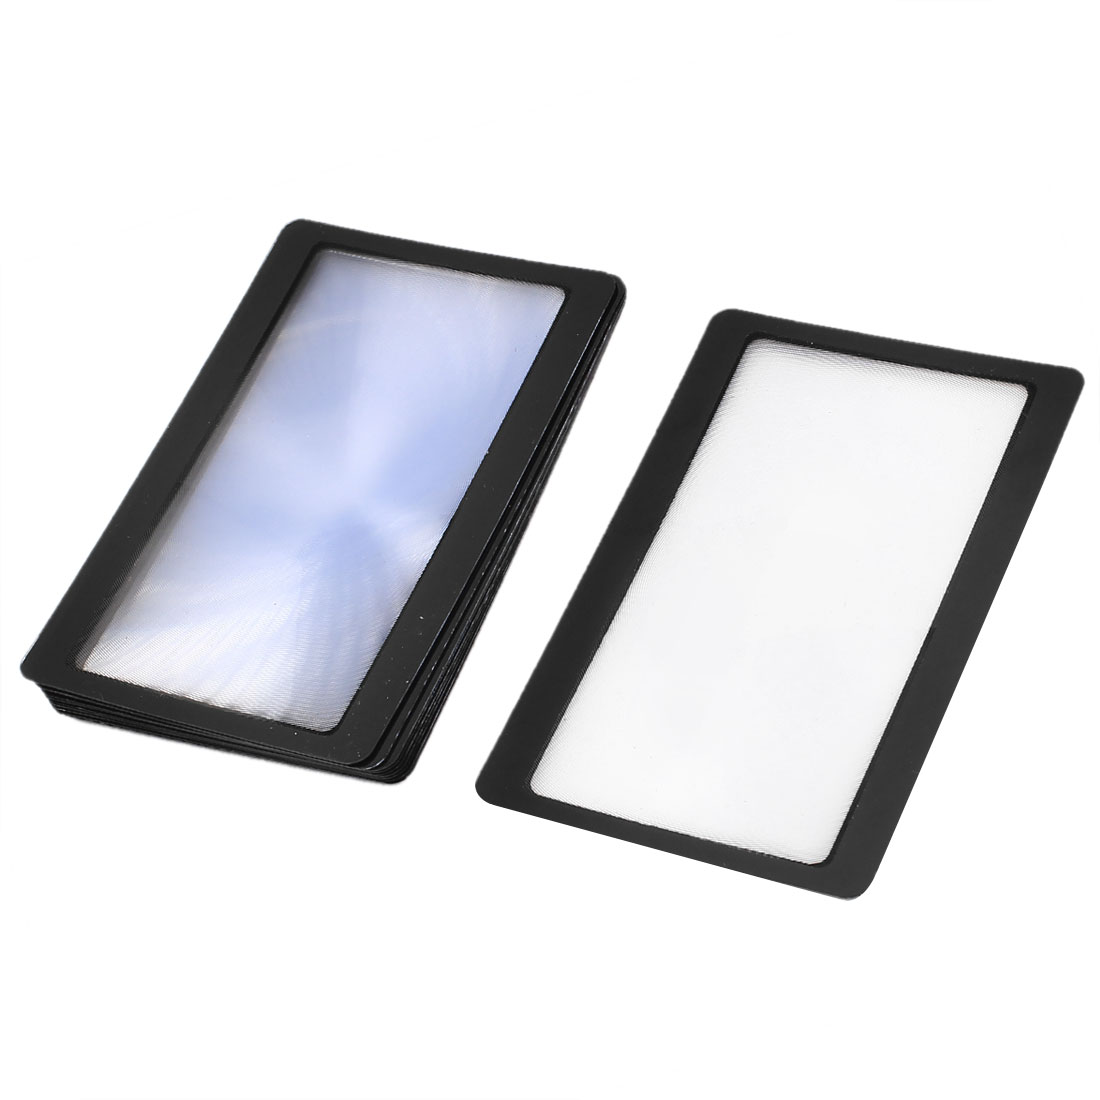 10 Pcs Black Frame Credit Card Reading Magnifier 3x Magnifying Wallet Loupe Lens